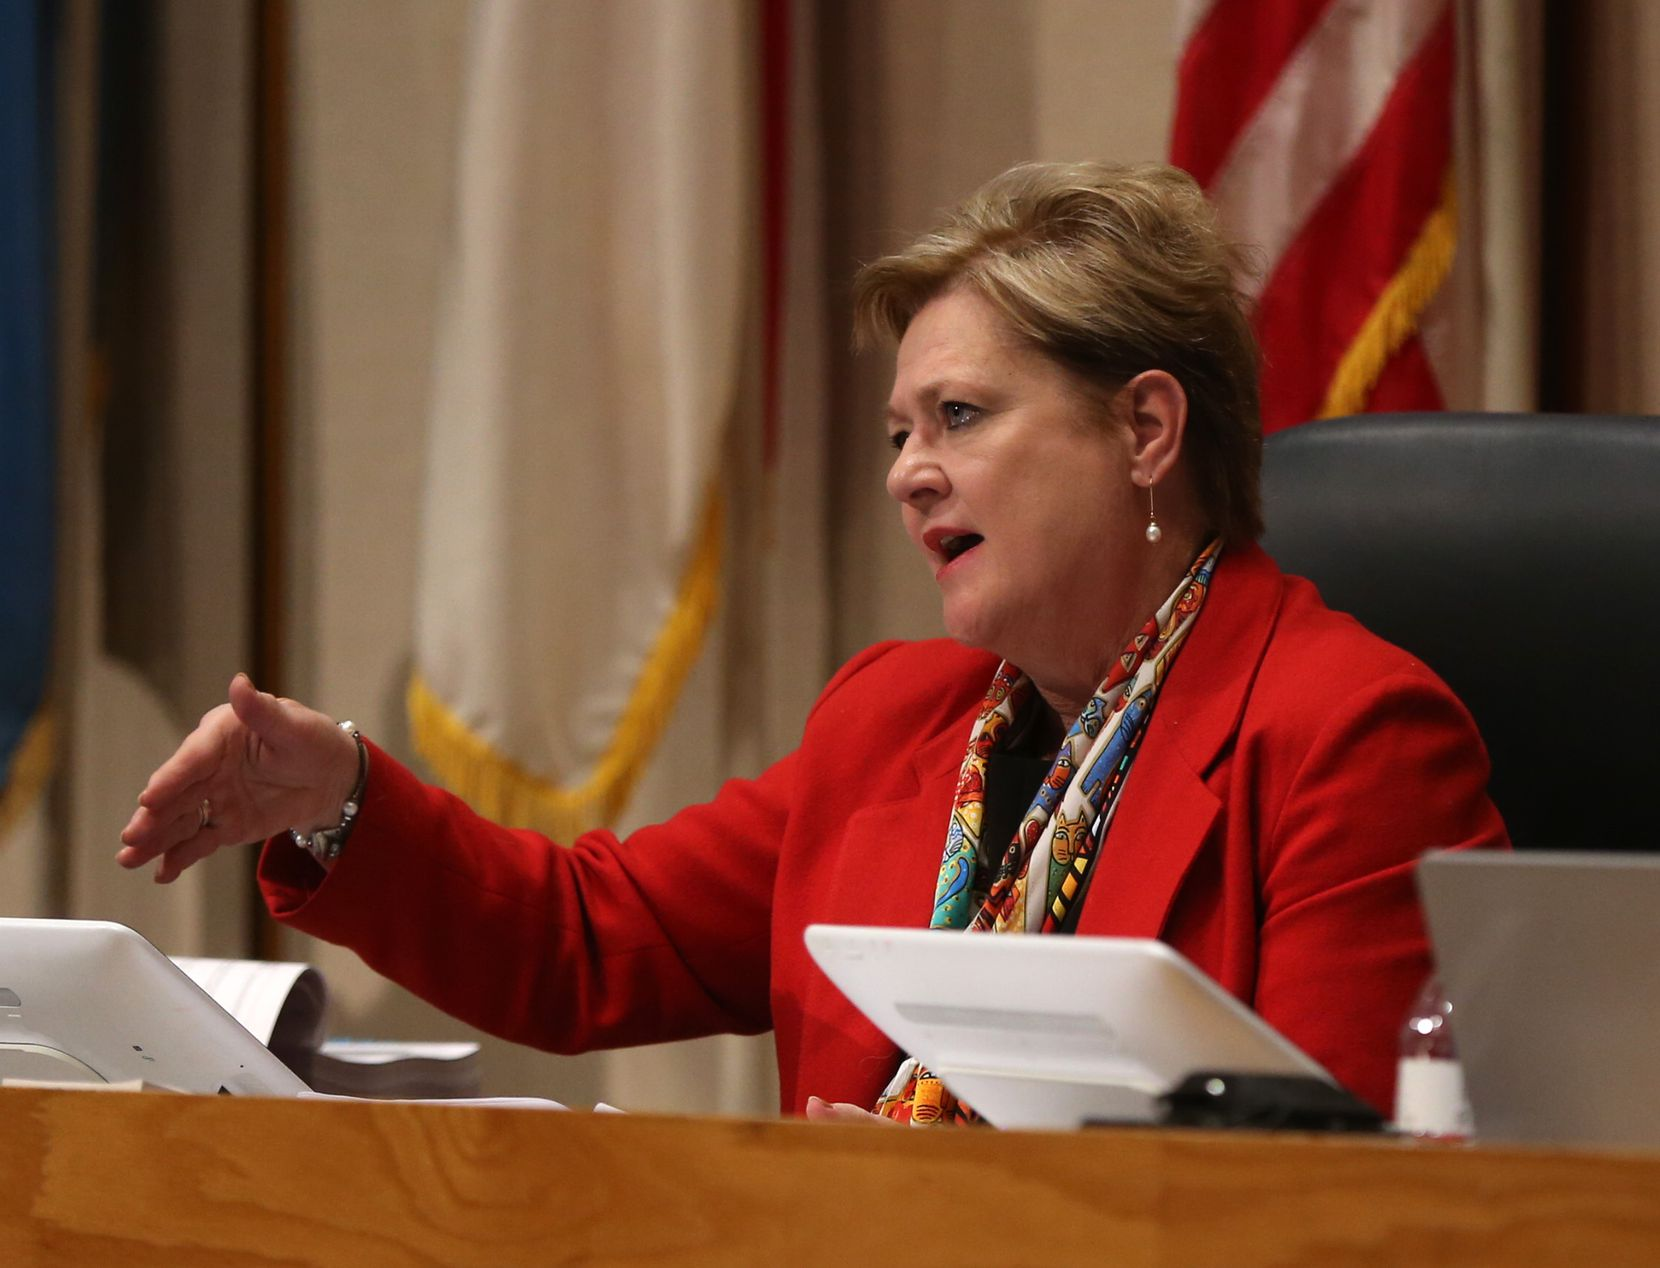 Dallas County Commissioner Theresa Daniel speaks during a Feb. 19 Commissioners Court meeting. (Rose Baca/Staff Photographer)